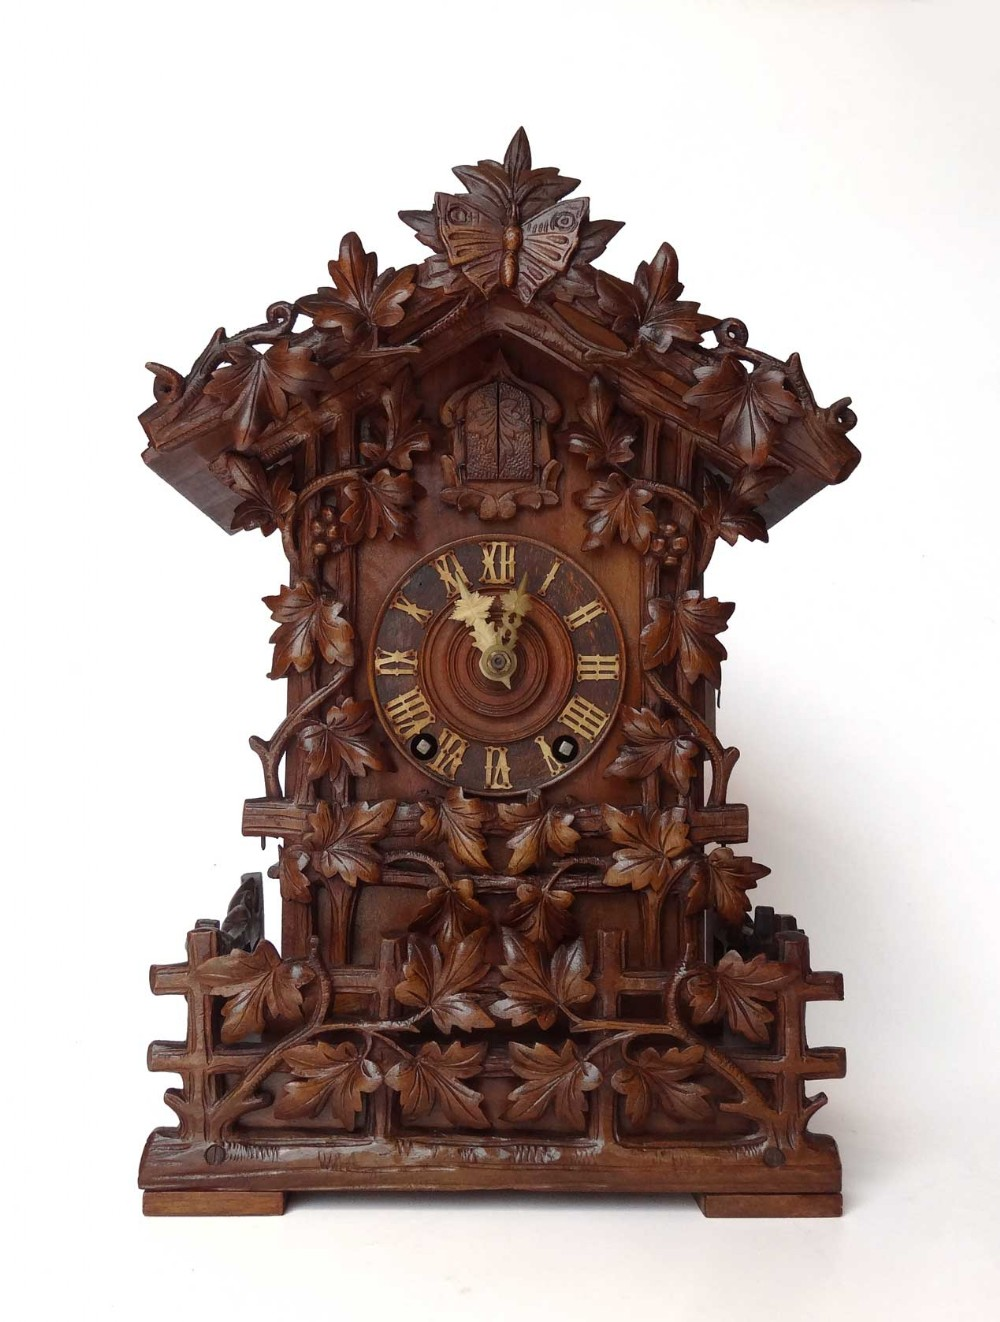 Antique cuckoo clock by beha 292969 How to make a cuckoo clock